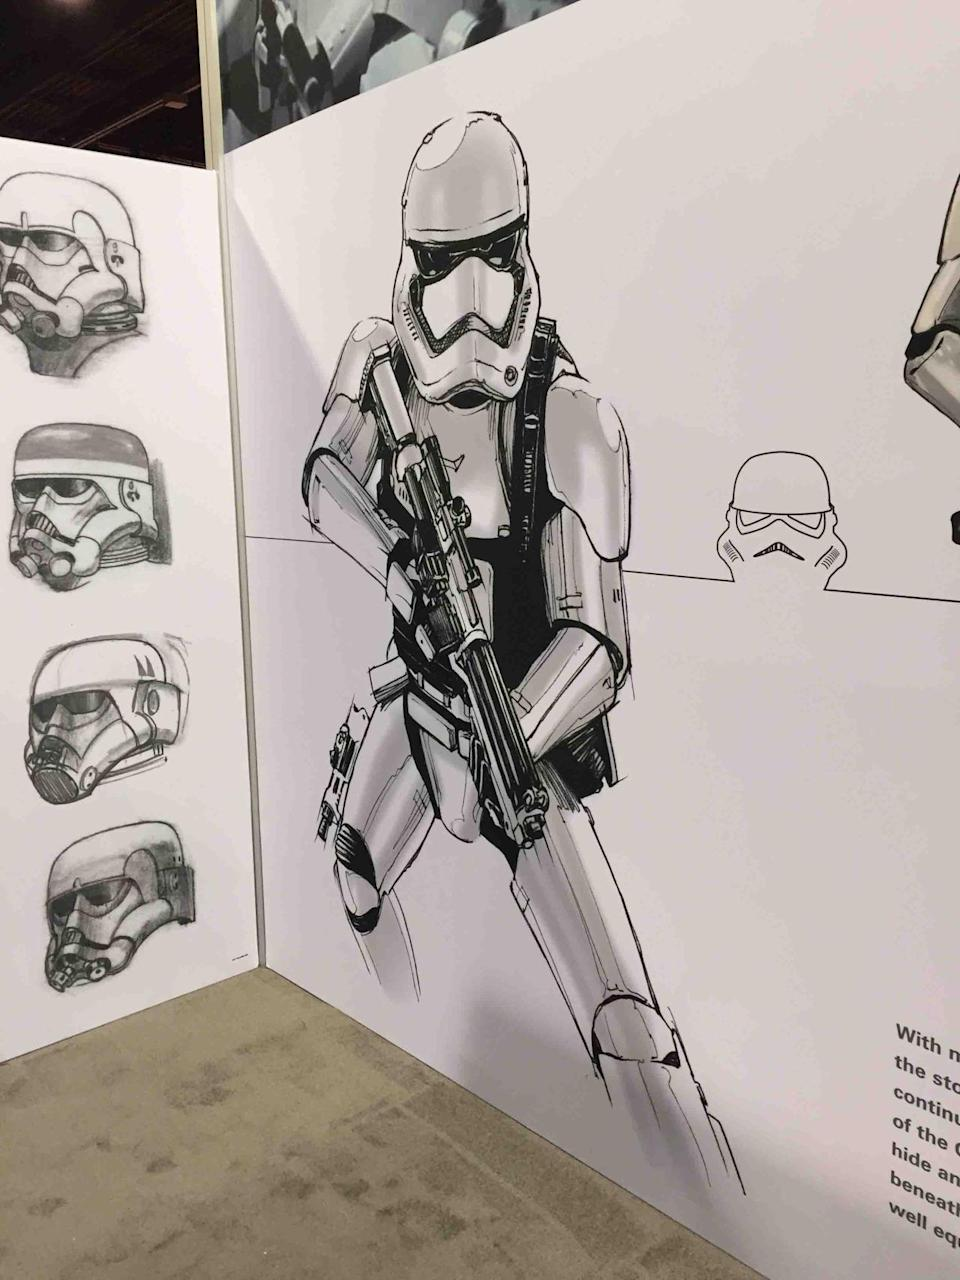 <p>Left: Some early McQuarrie helmet sketches from the 1970s. Right: The latest incarnation of the iconic space soldier. With the collapse of the Empire in 'Return of the Jedi,' the remaining loyalists form the First Order. The updated armor will be showcased in 'The Force Awakens.'</p>